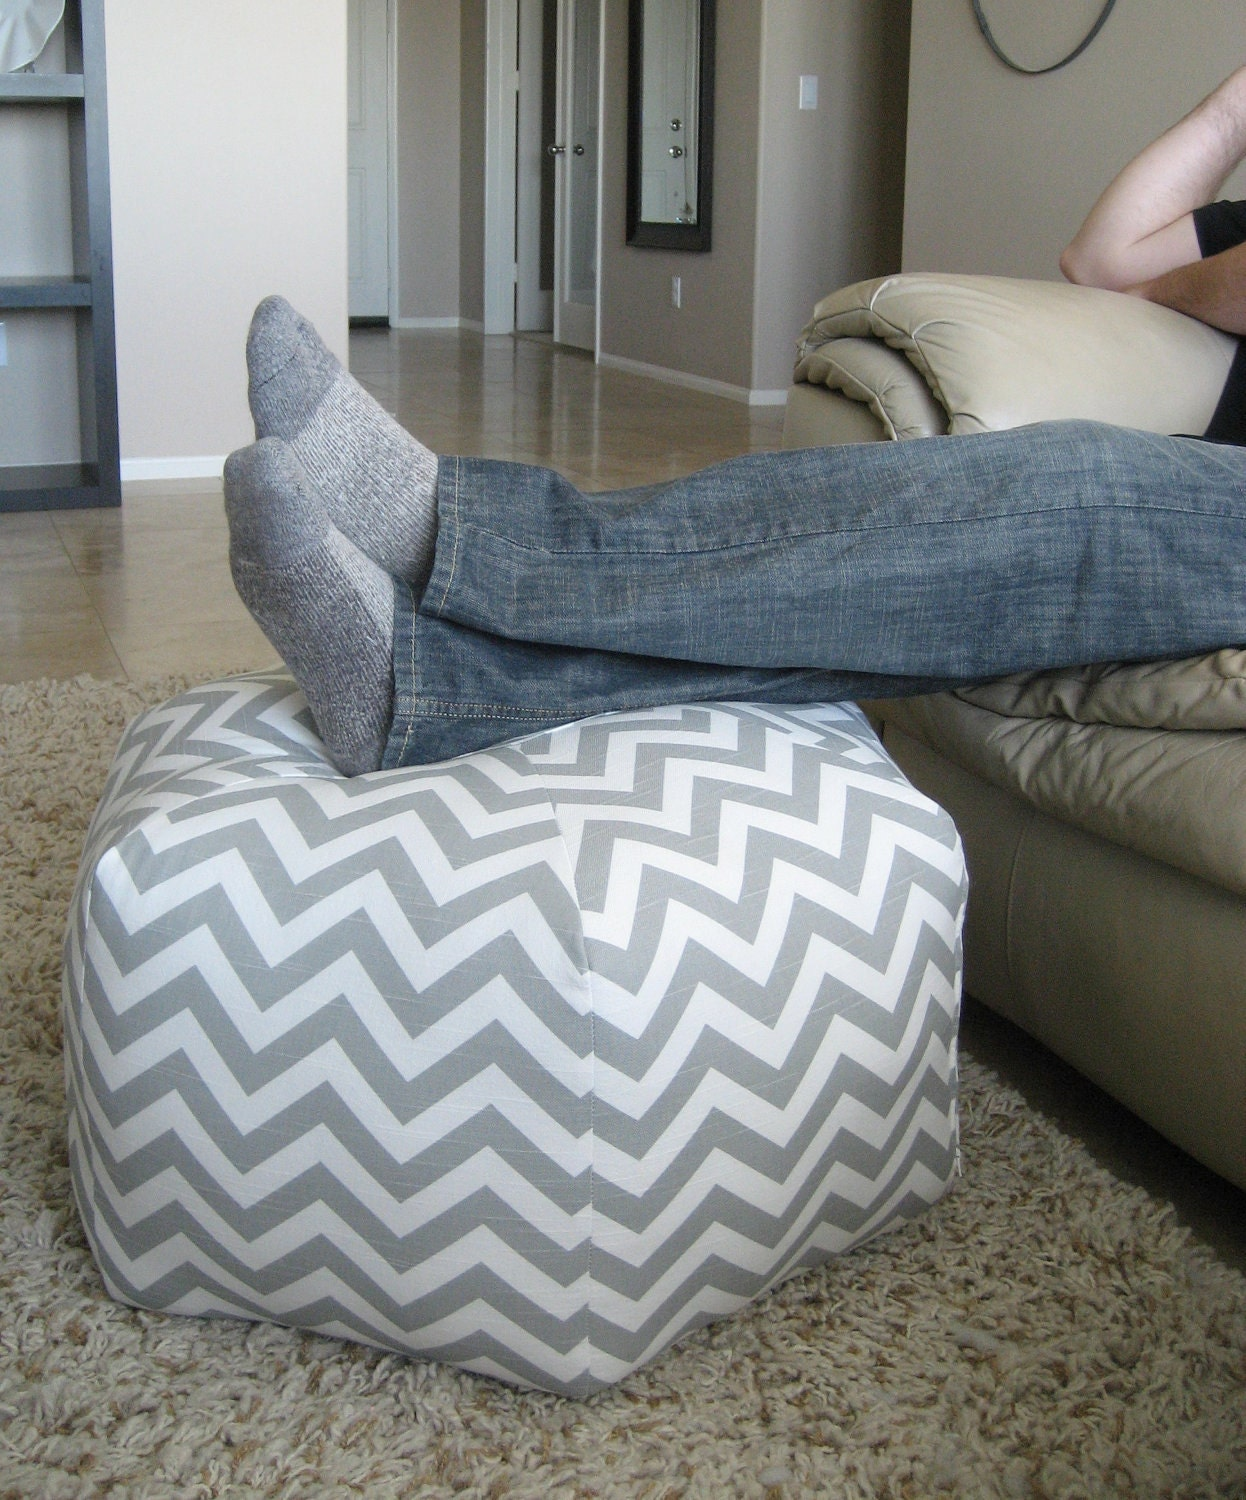 Gray Floor Pillows : 24 Pouf Ottoman Floor Pillow Grey White Zig Zag by aletafae